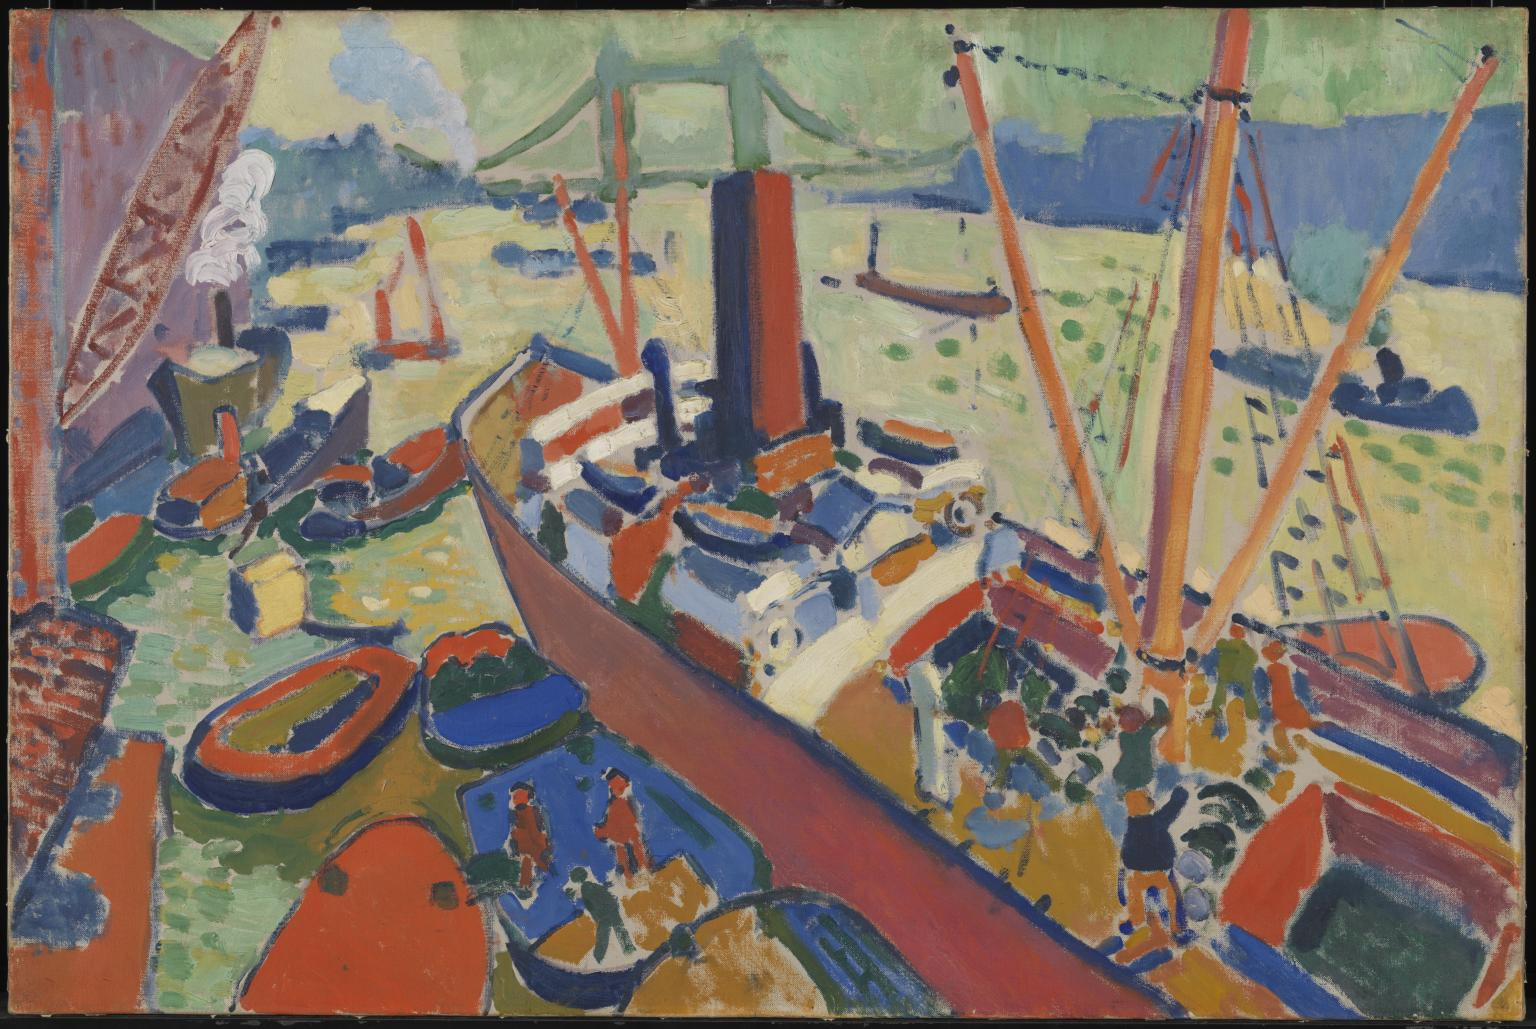 The Pool of London 1906 André Derain 1880-1954 Tate.org.uk